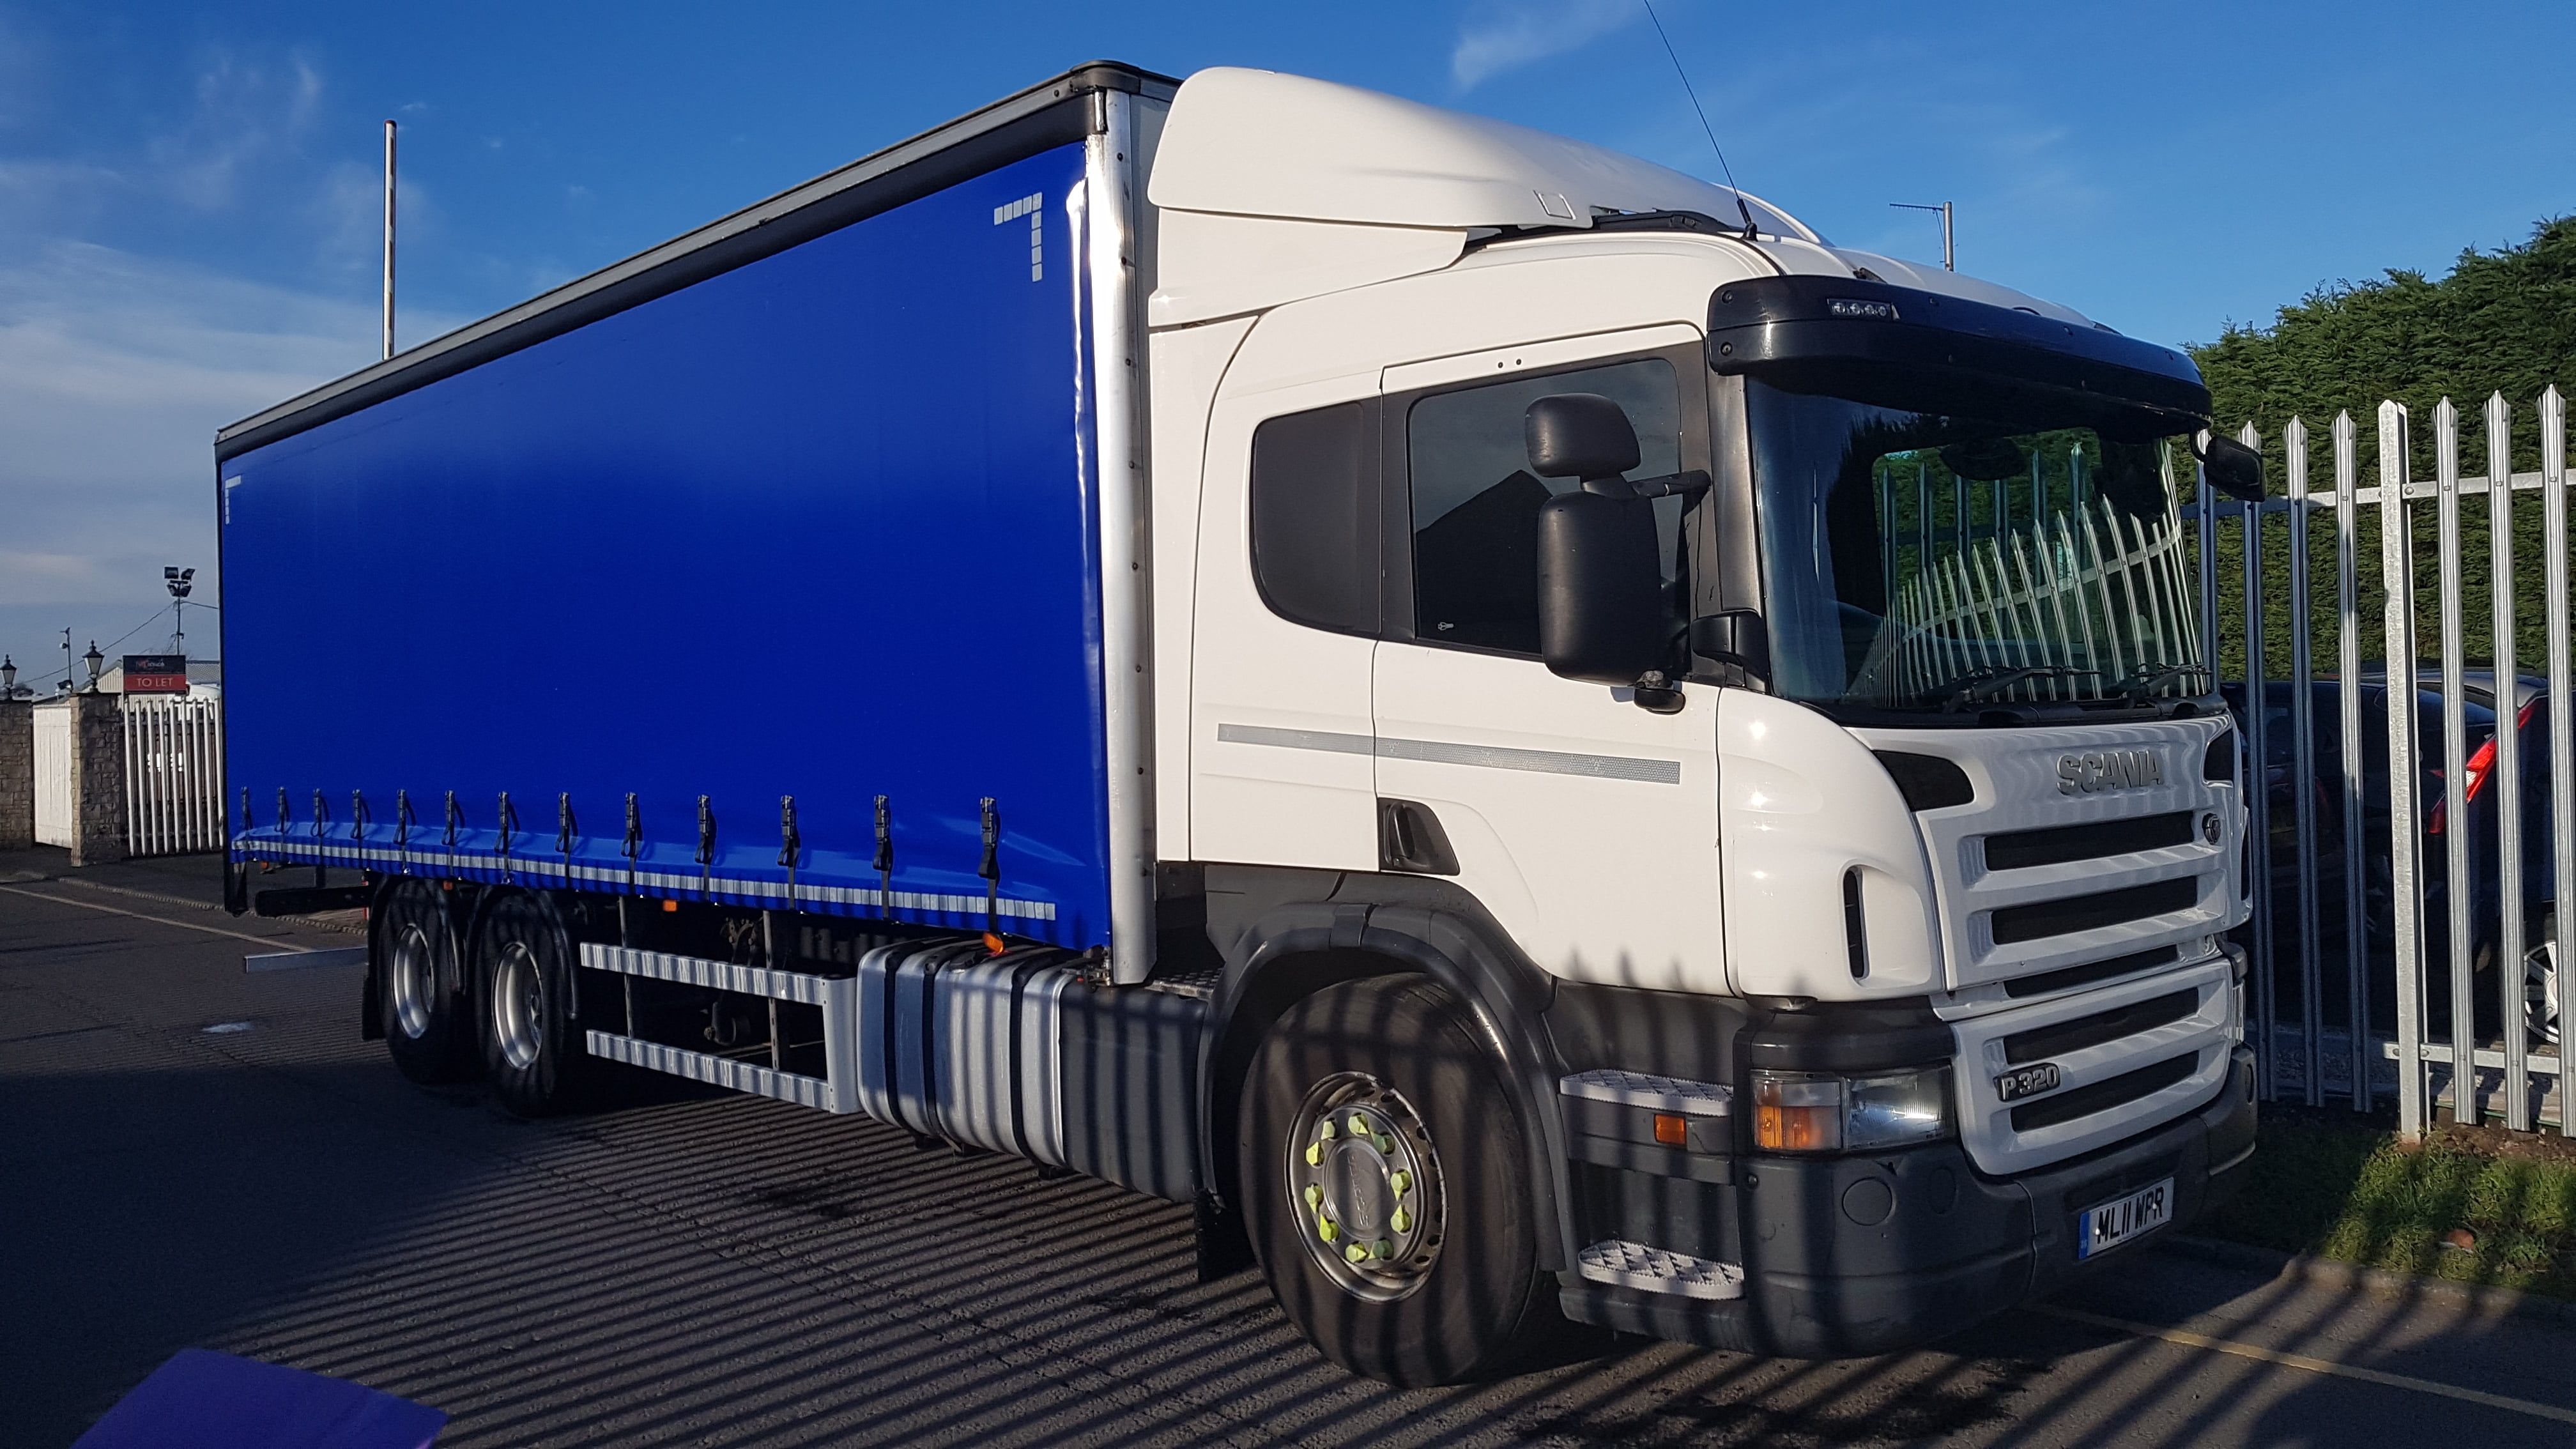 2011 (11) Scania P320. Manual, Euro 5, Sleeper Cab, 28FT Body, Barn Doors, Available as Curtainsider or Cut down to Flat, FSH.